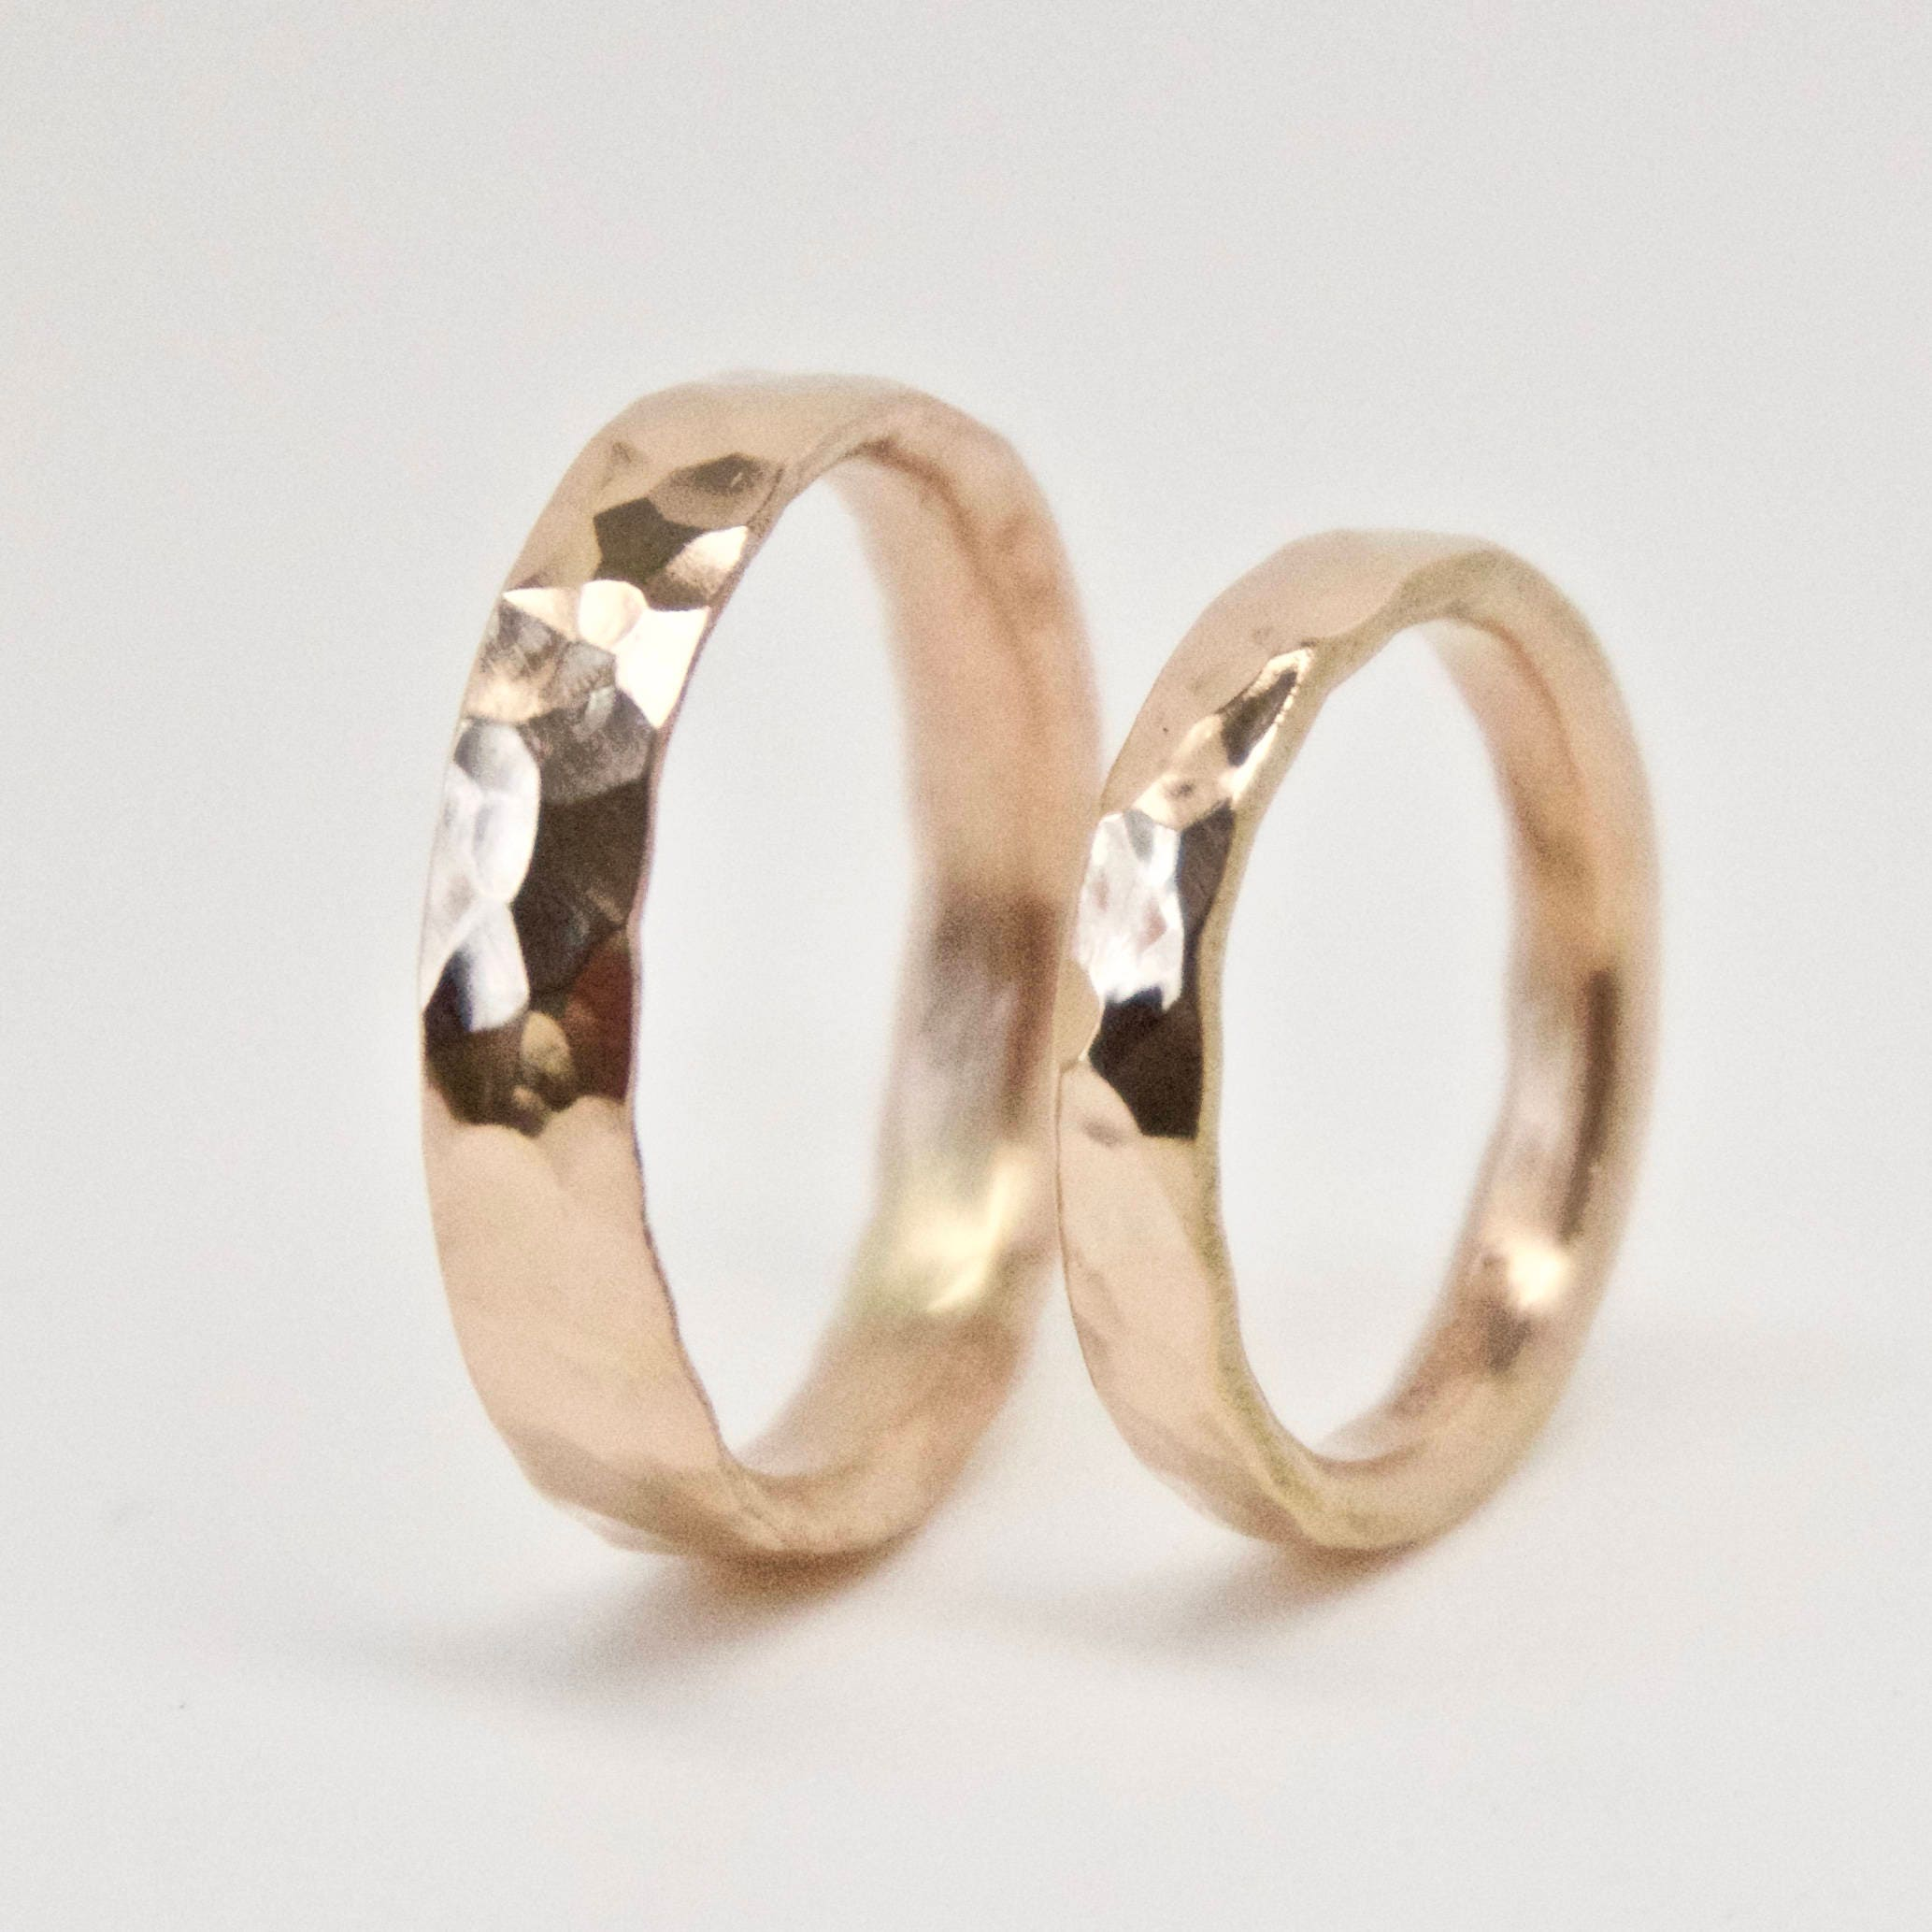 Hammered Rose Gold Wedding Ring Set 18 Carat